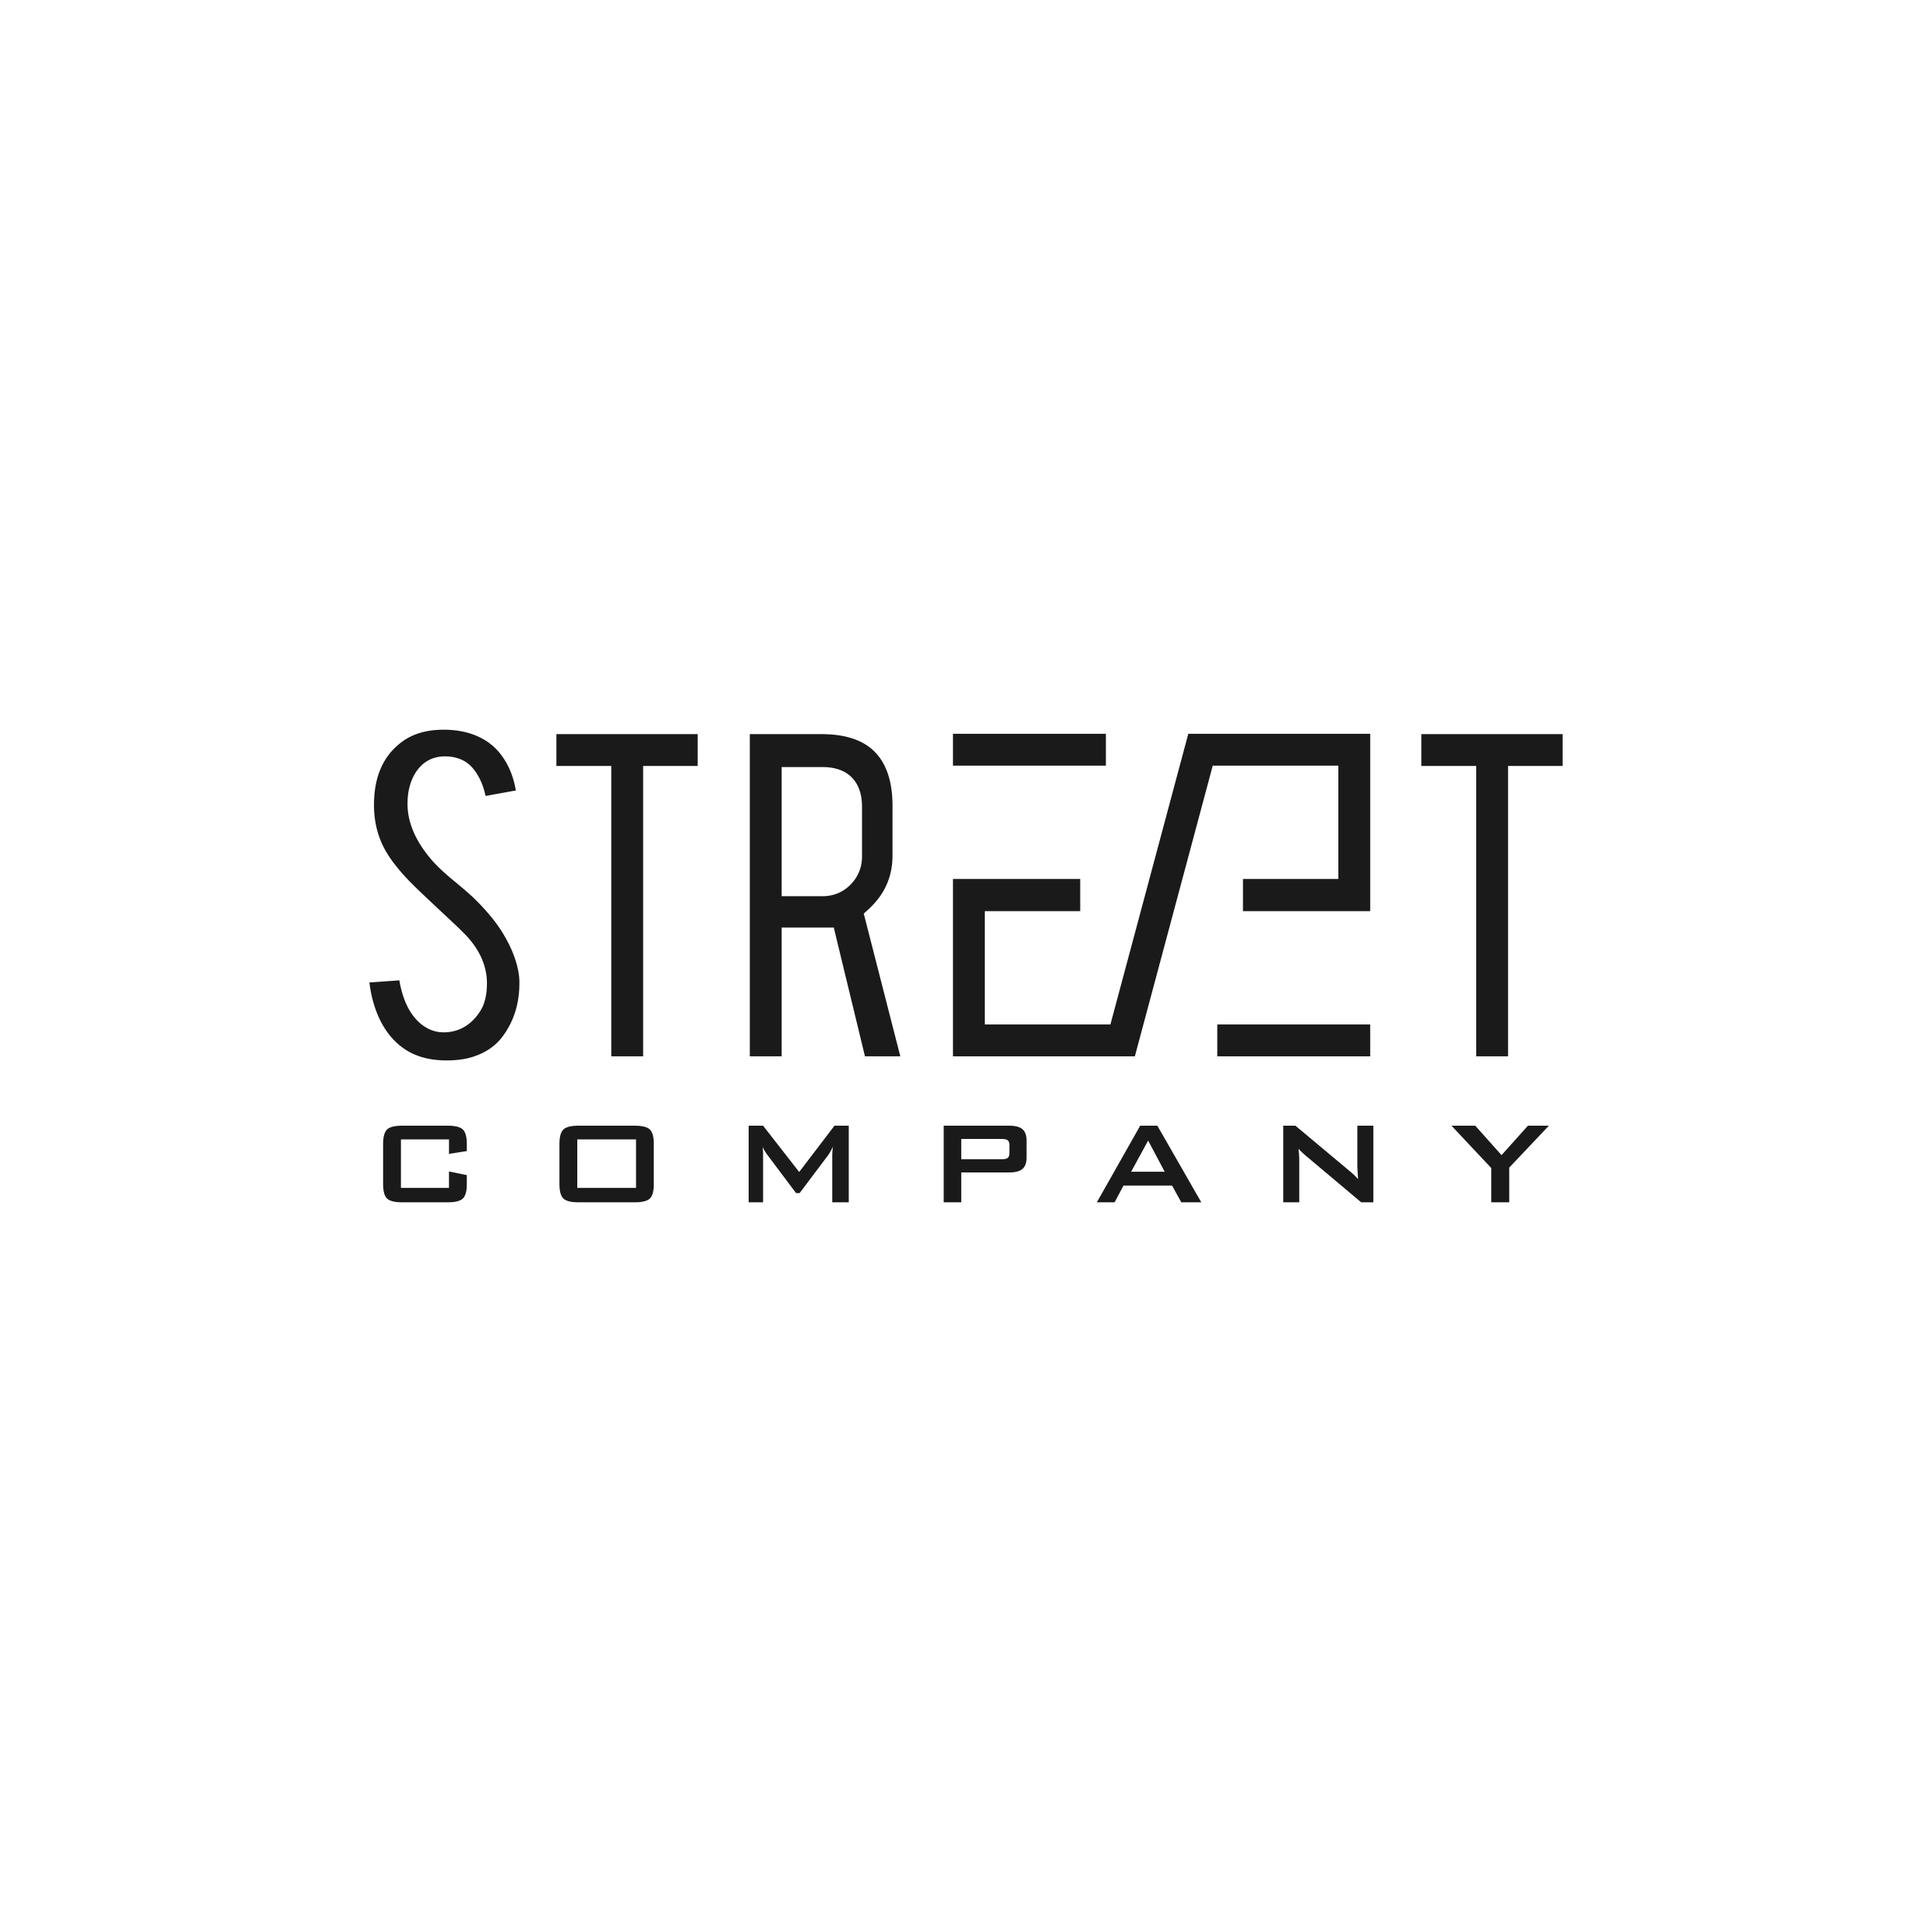 Modern logo for Street Wear